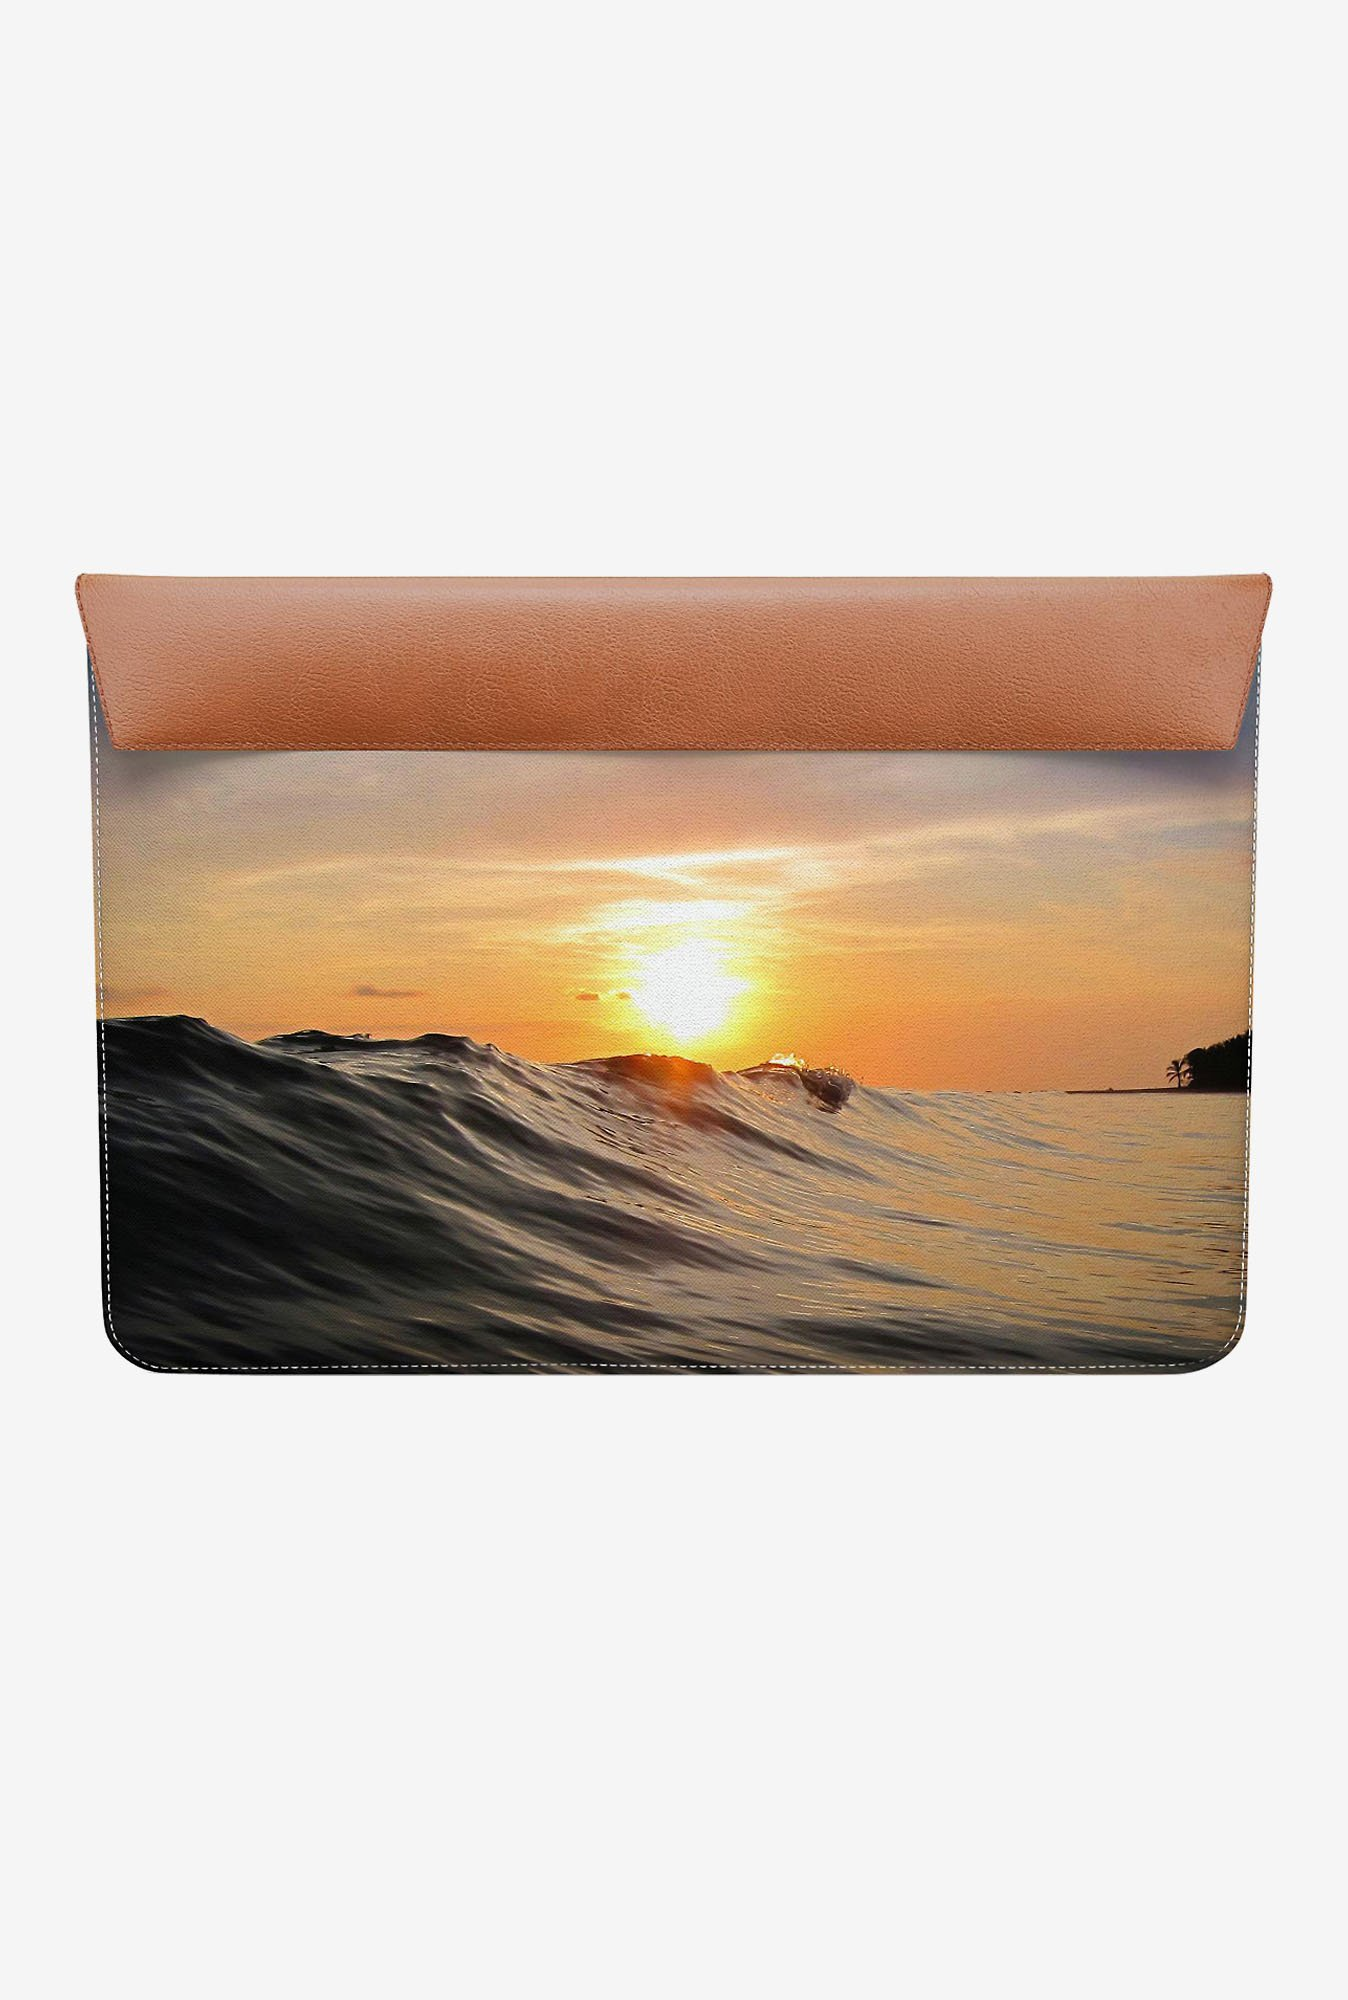 DailyObjects Sunset MacBook Pro 13 Envelope Sleeve